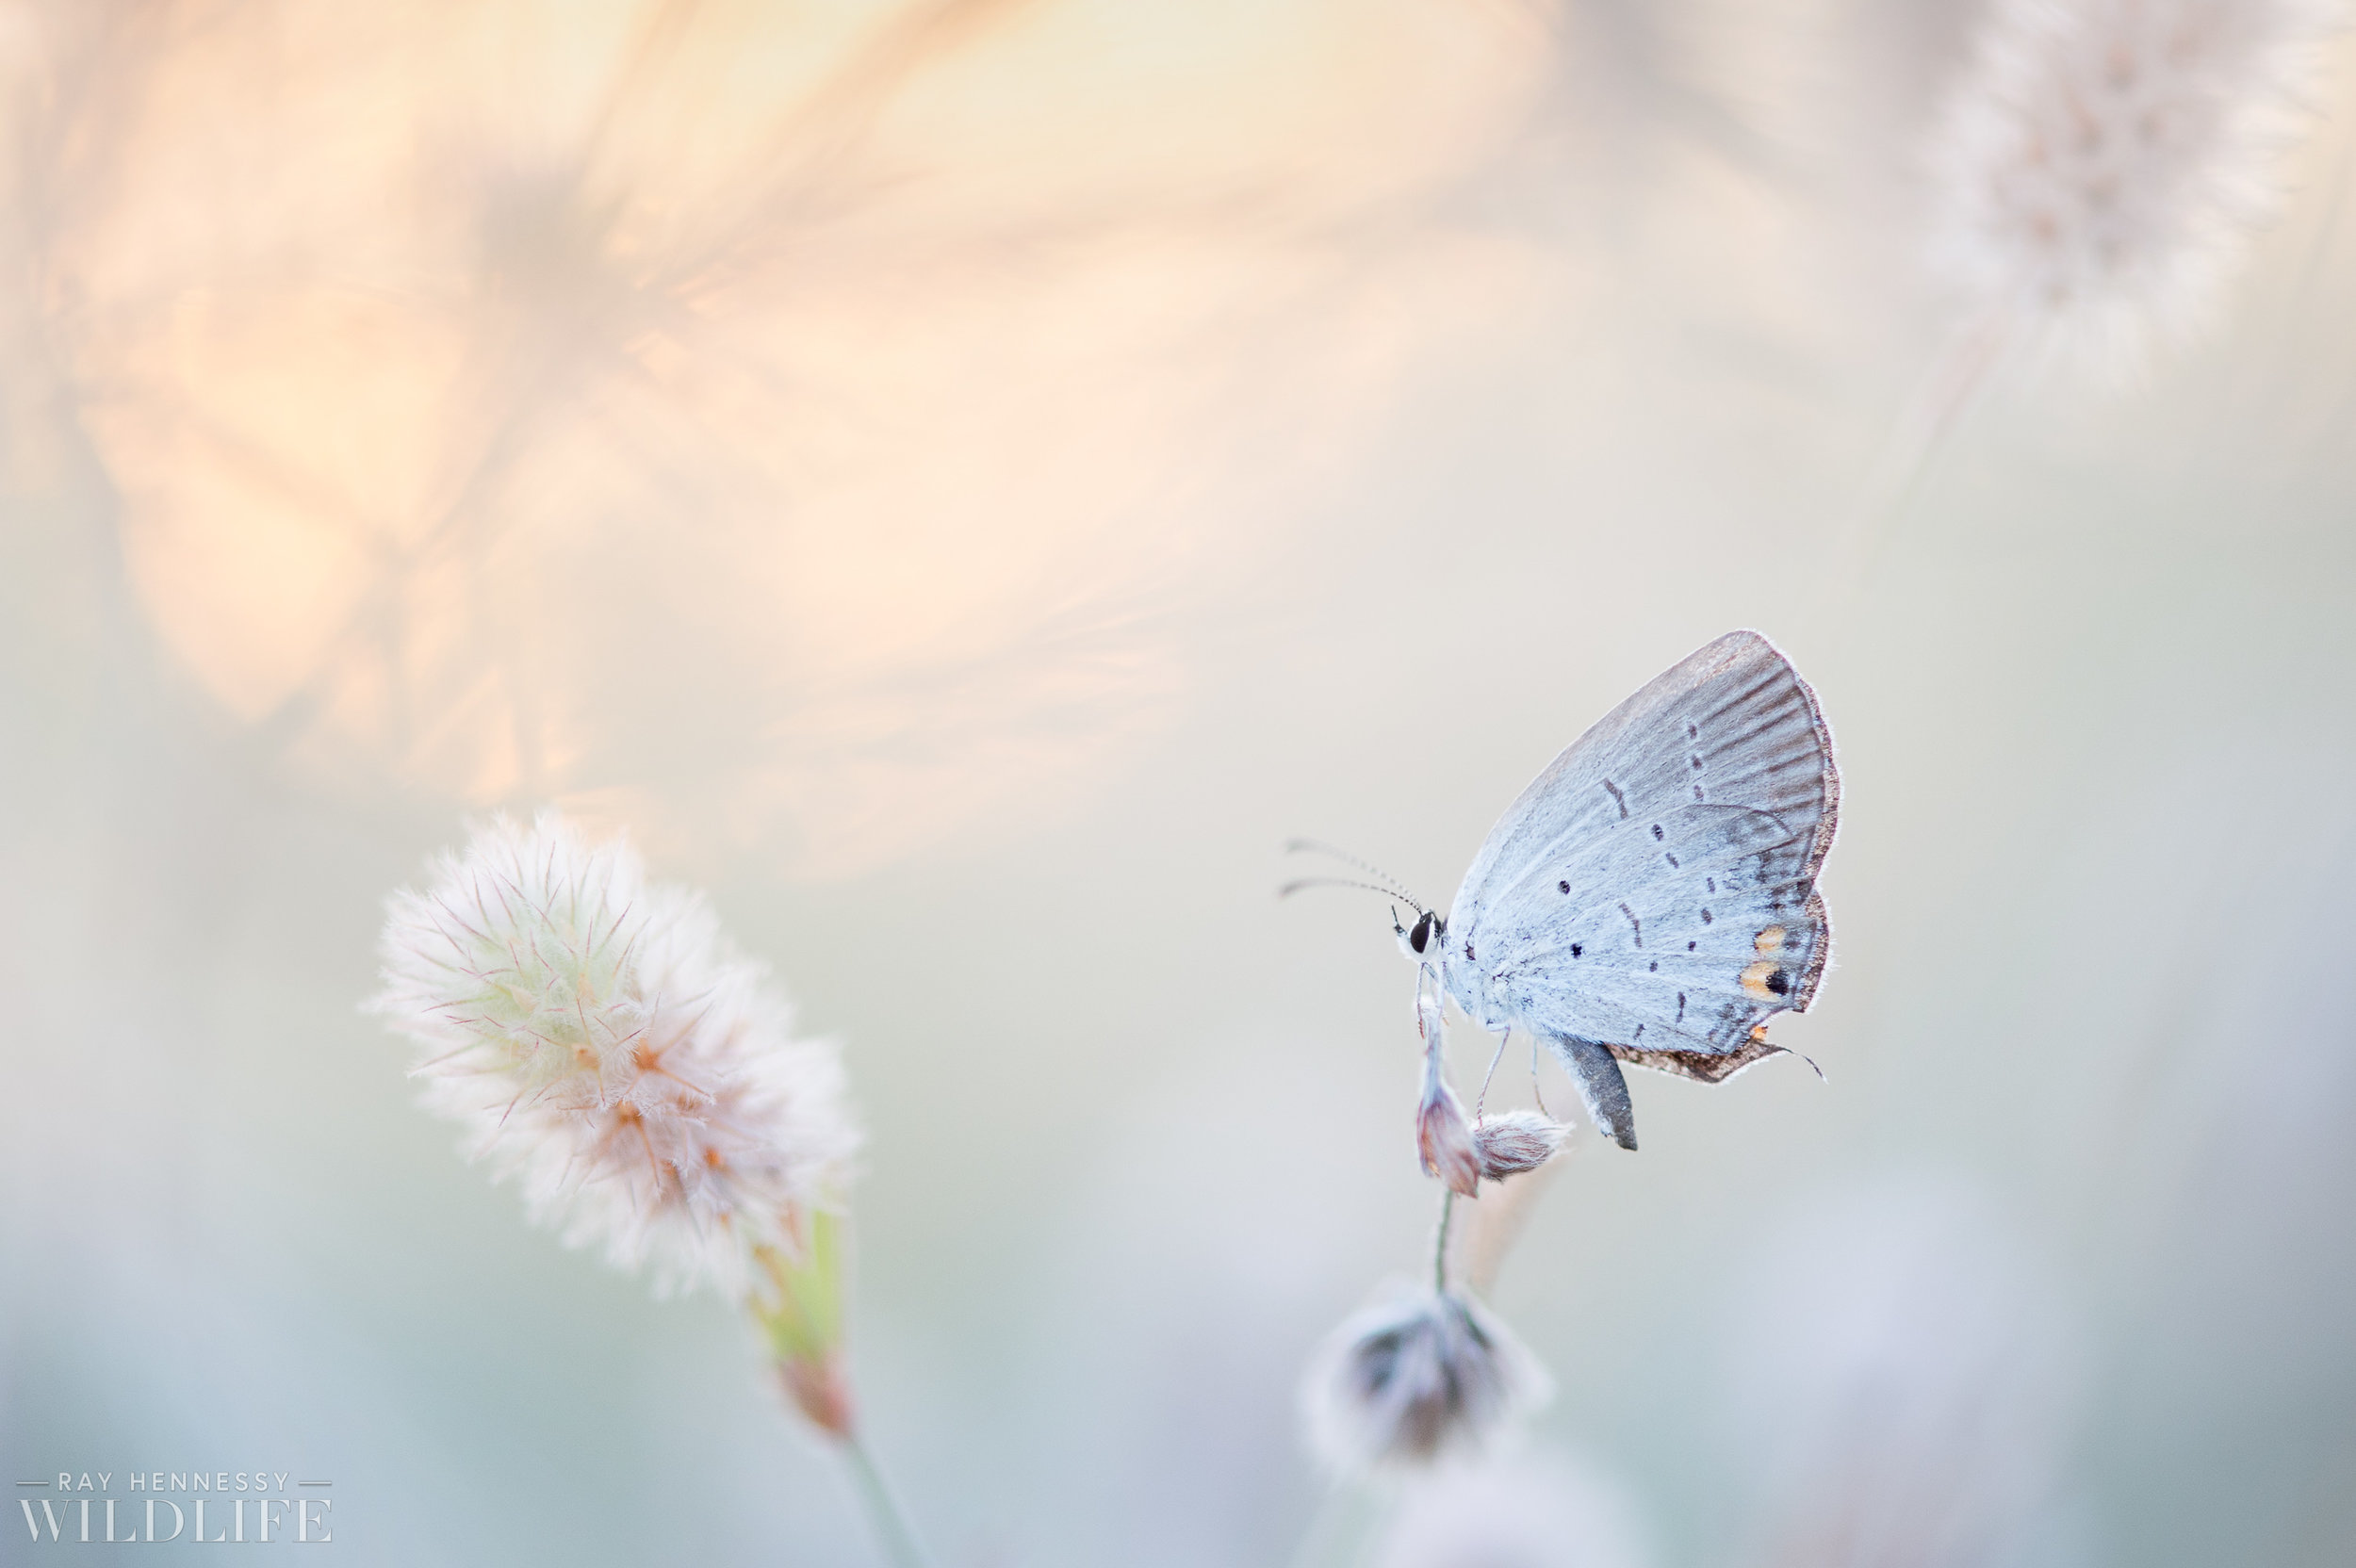 003_butterflies and insects.jpg